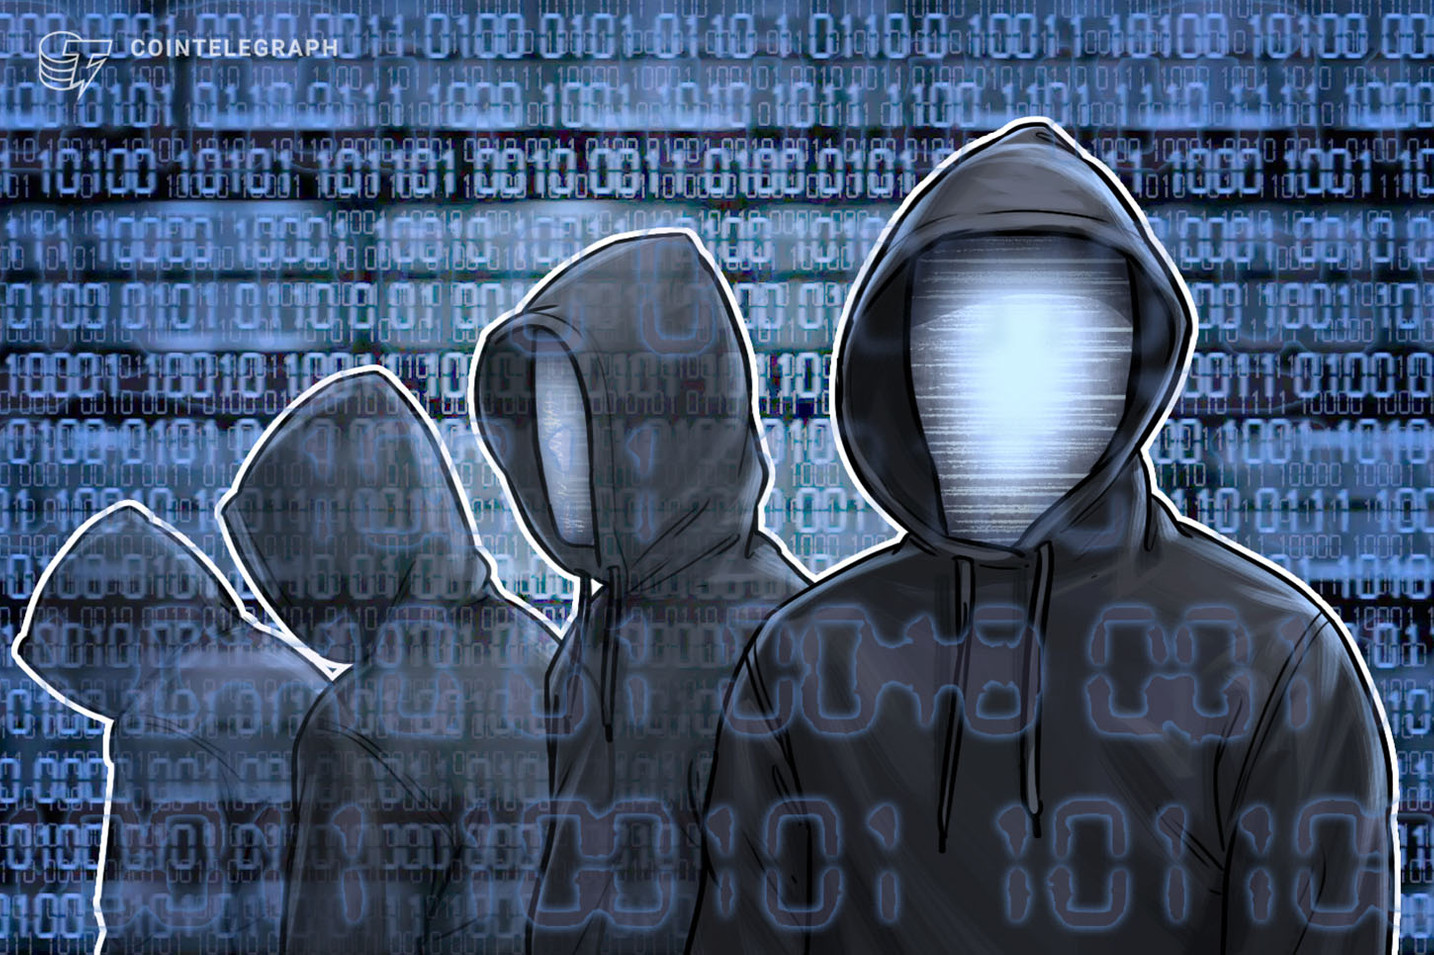 Hackers Used Microsoft Email Accounts to Steal Users' Cryptocurrency, Report